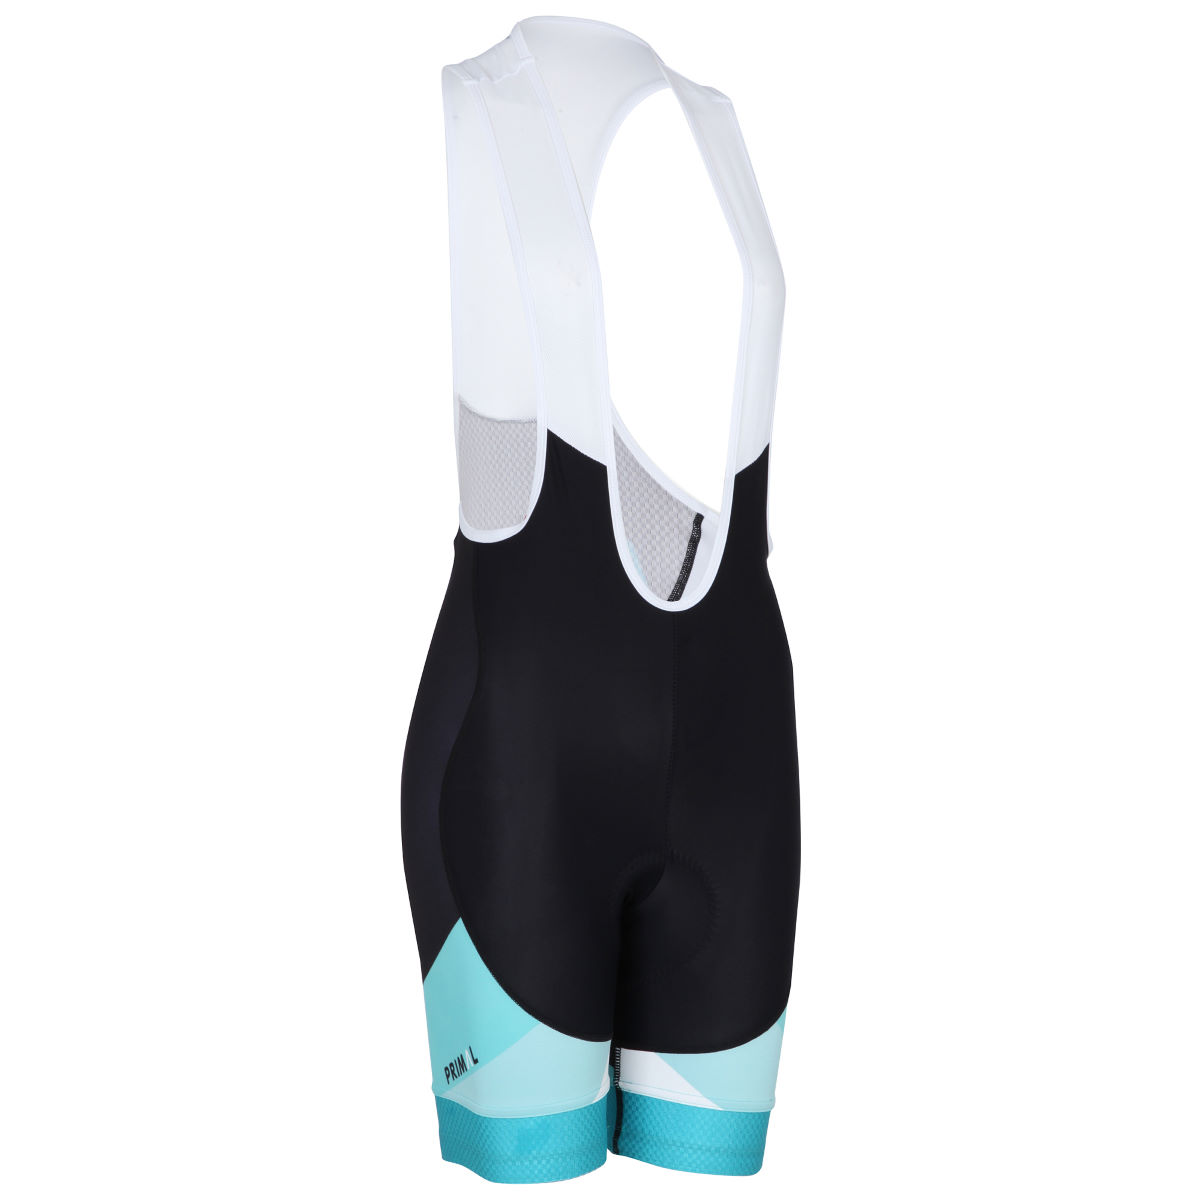 Primal Women's Sound Barrier Helix Bib Shorts - Extra Large